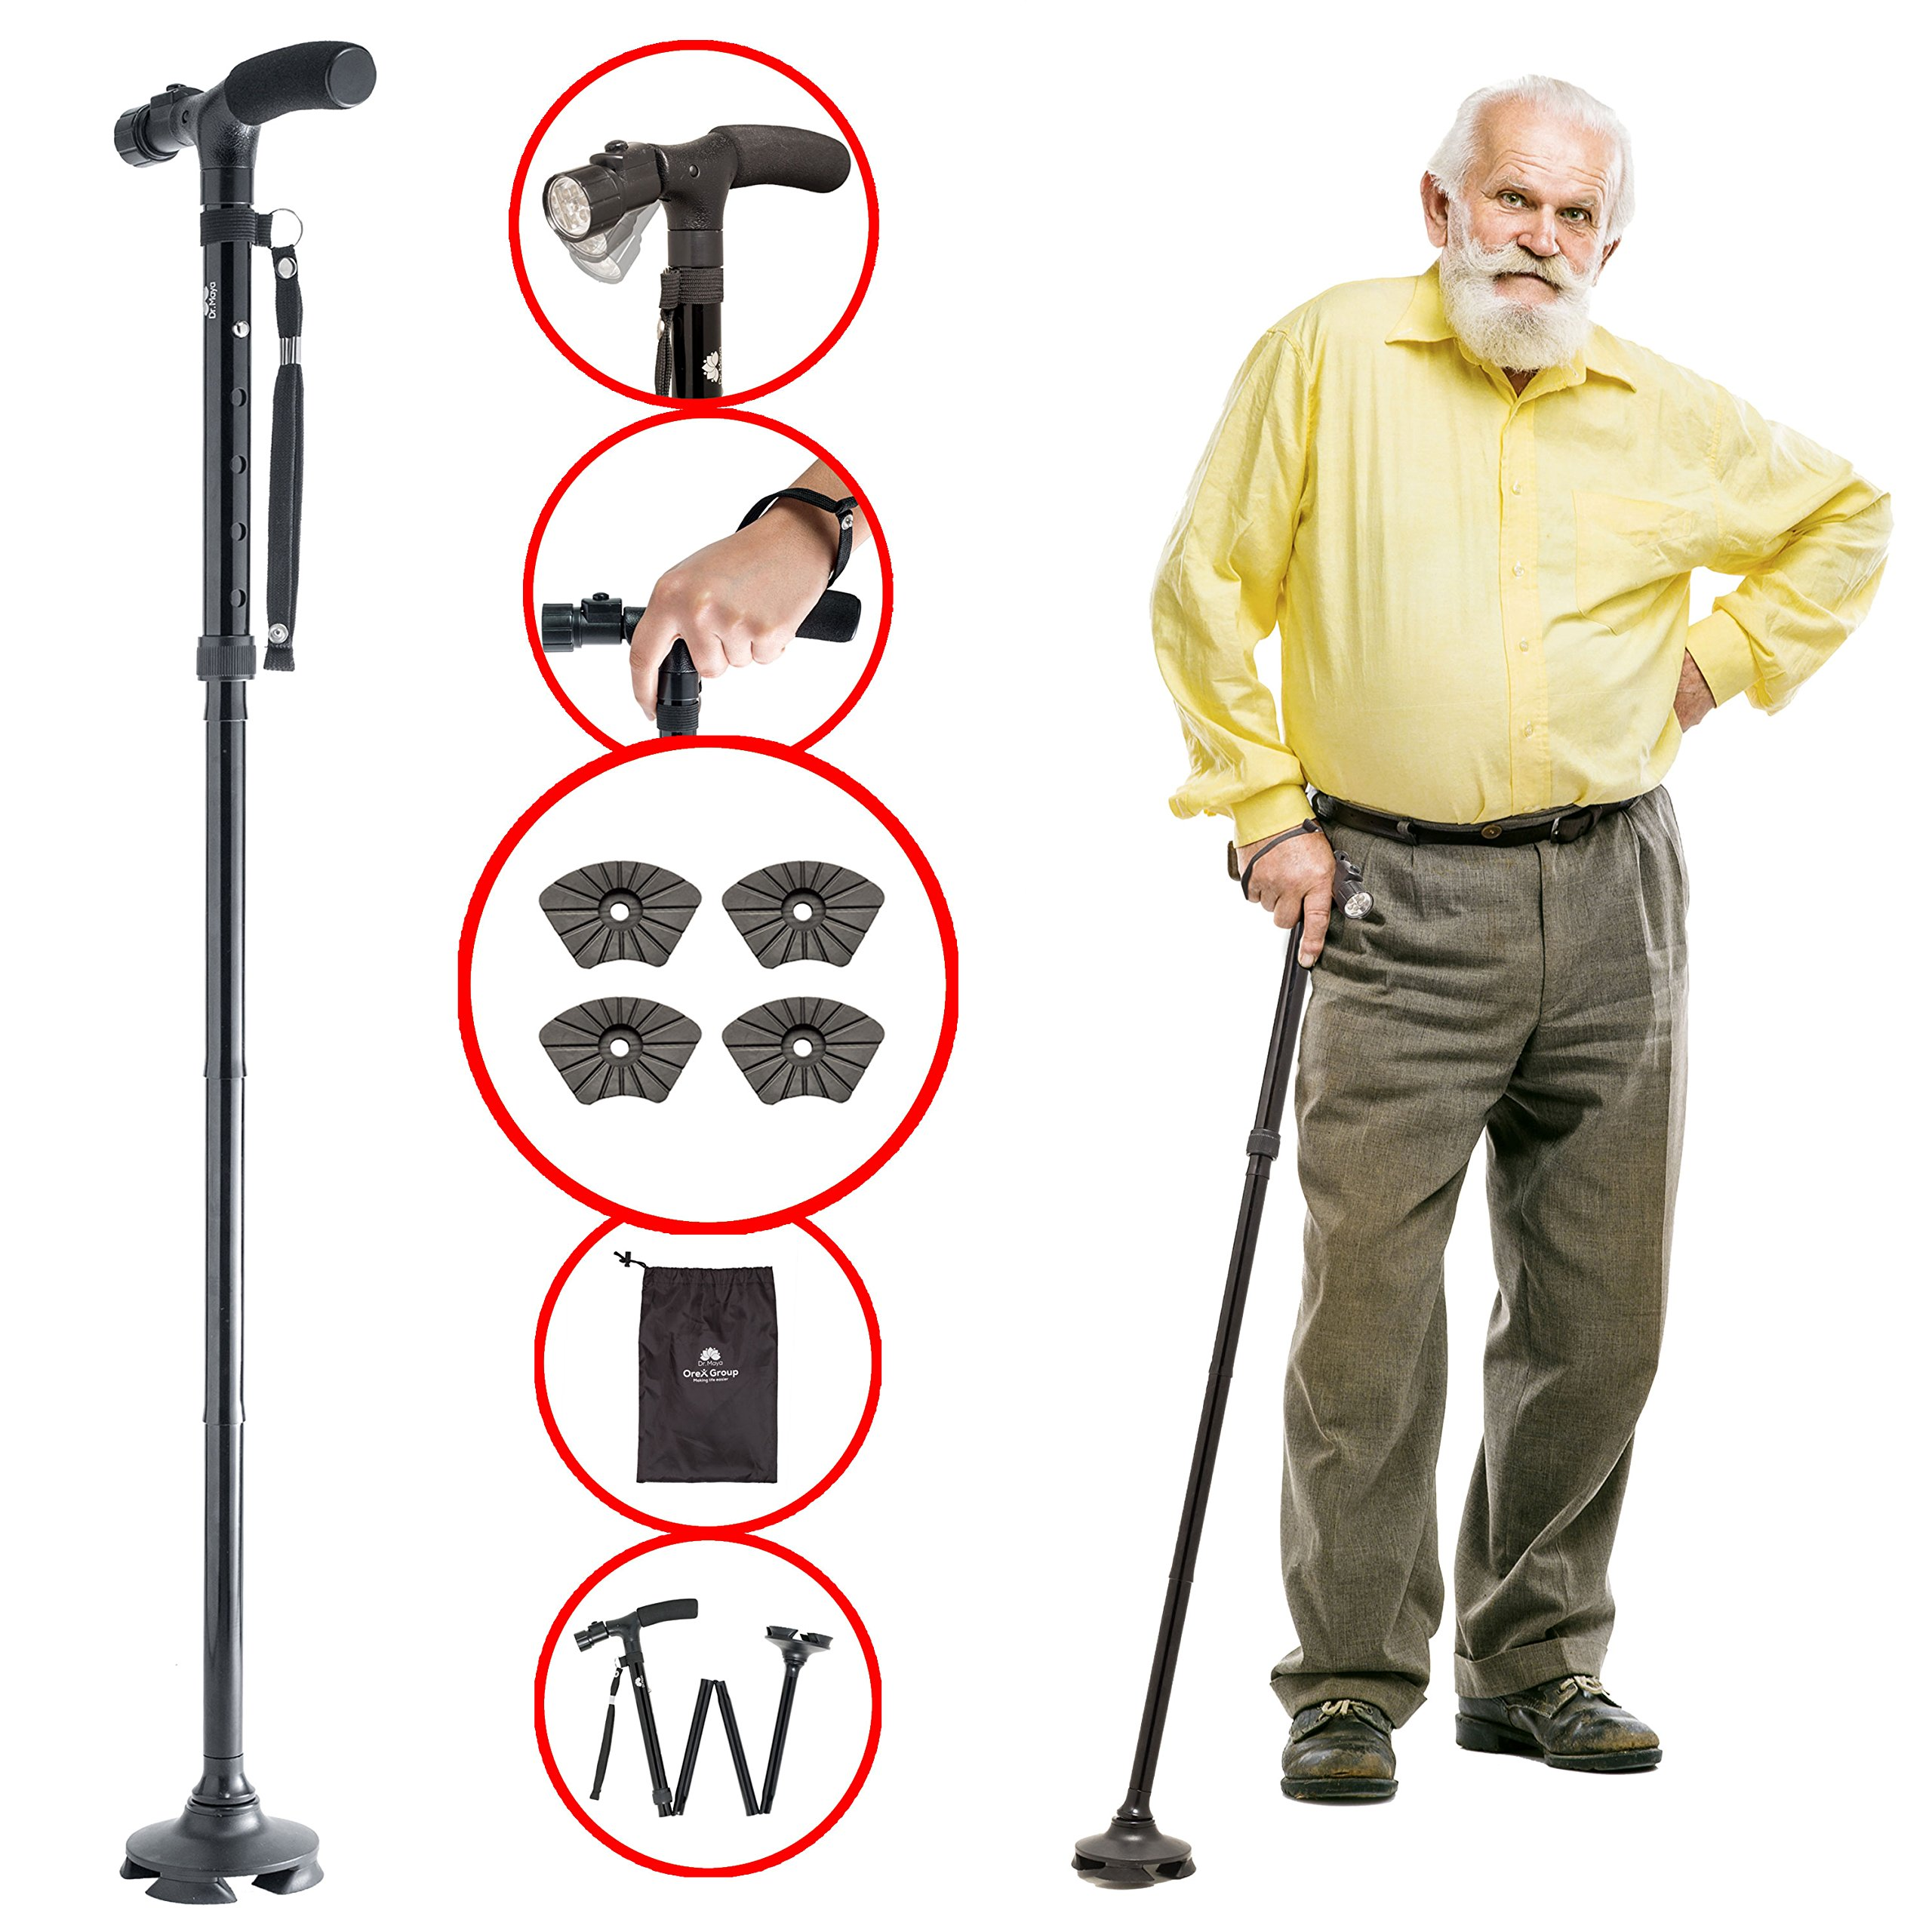 Walking Cane by Dr. Maya with Free Cane Tips & LED Lights - Lightweight, Adjustable, Foldable, Pivoting Base, Quad Travel Balance Stick Support for Elderly Men and Women - Walker Gift for Seniors! by Dr. Maya (Image #1)